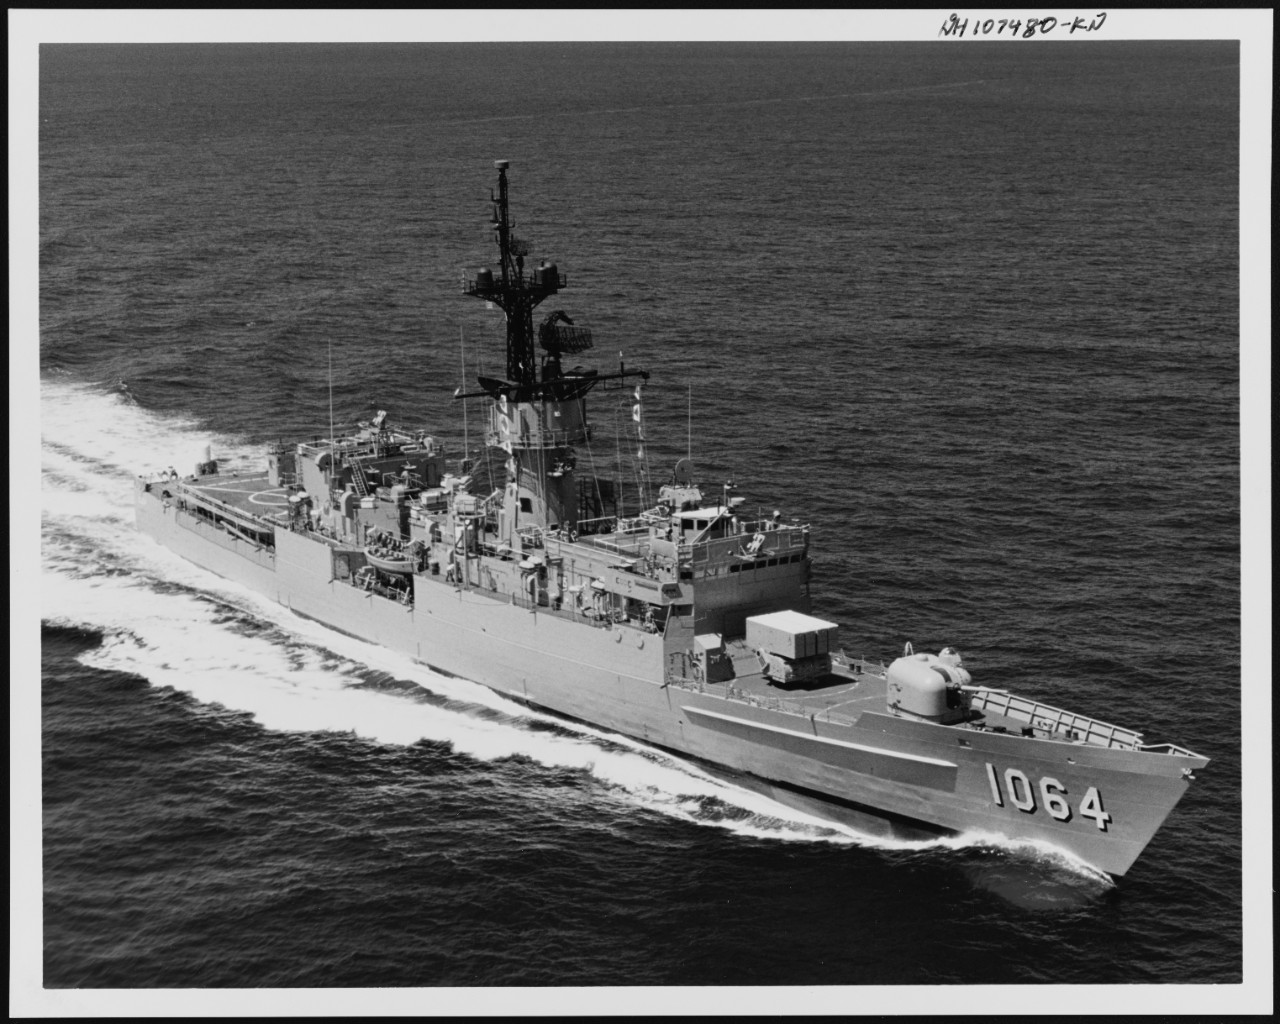 Photo #: NH 107480-KN USS Lockwood